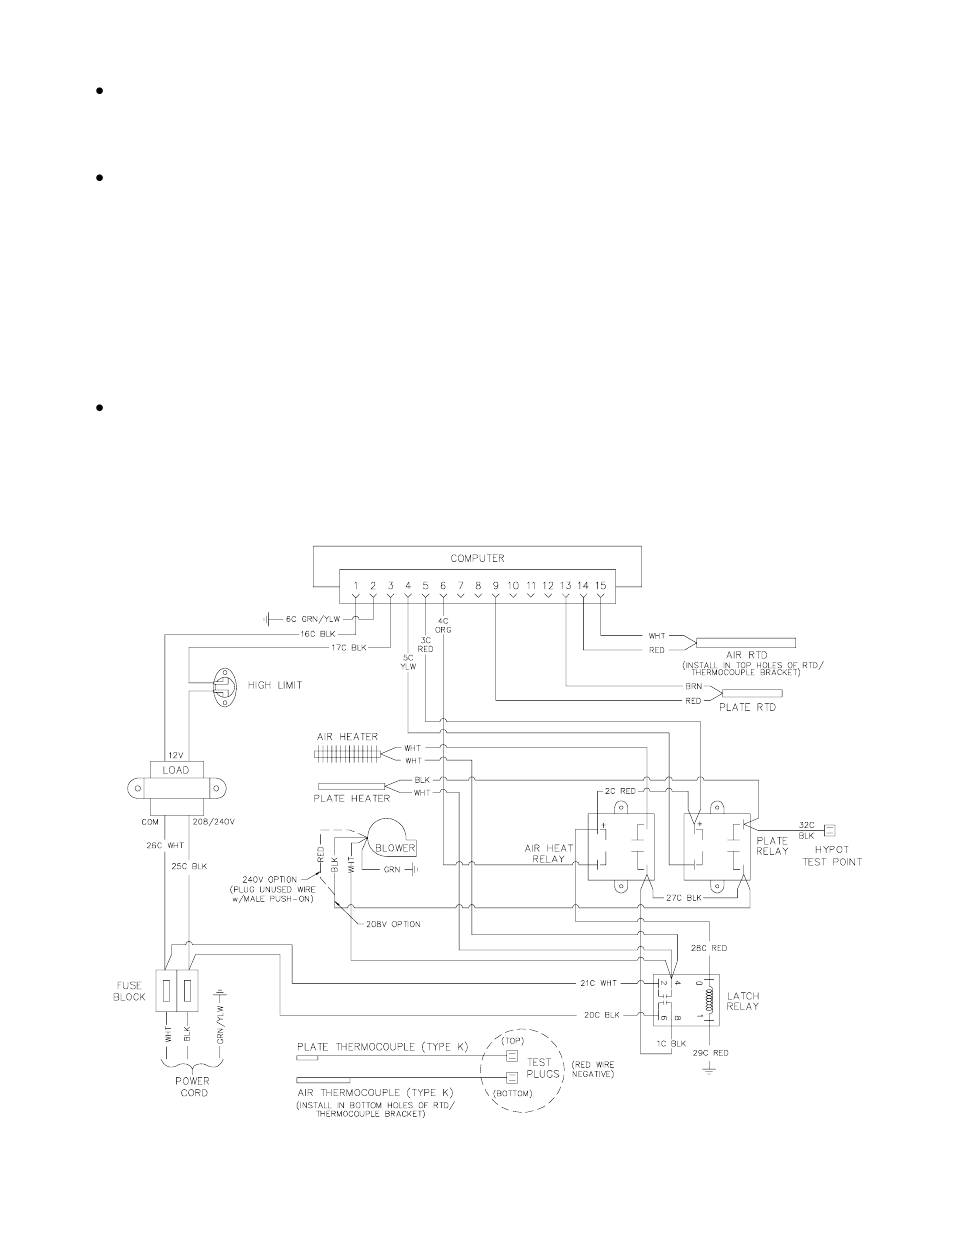 Frymaster Wiring Diagram Library Landing 11 Heated Zone Hlz 22 User Manual Page 20